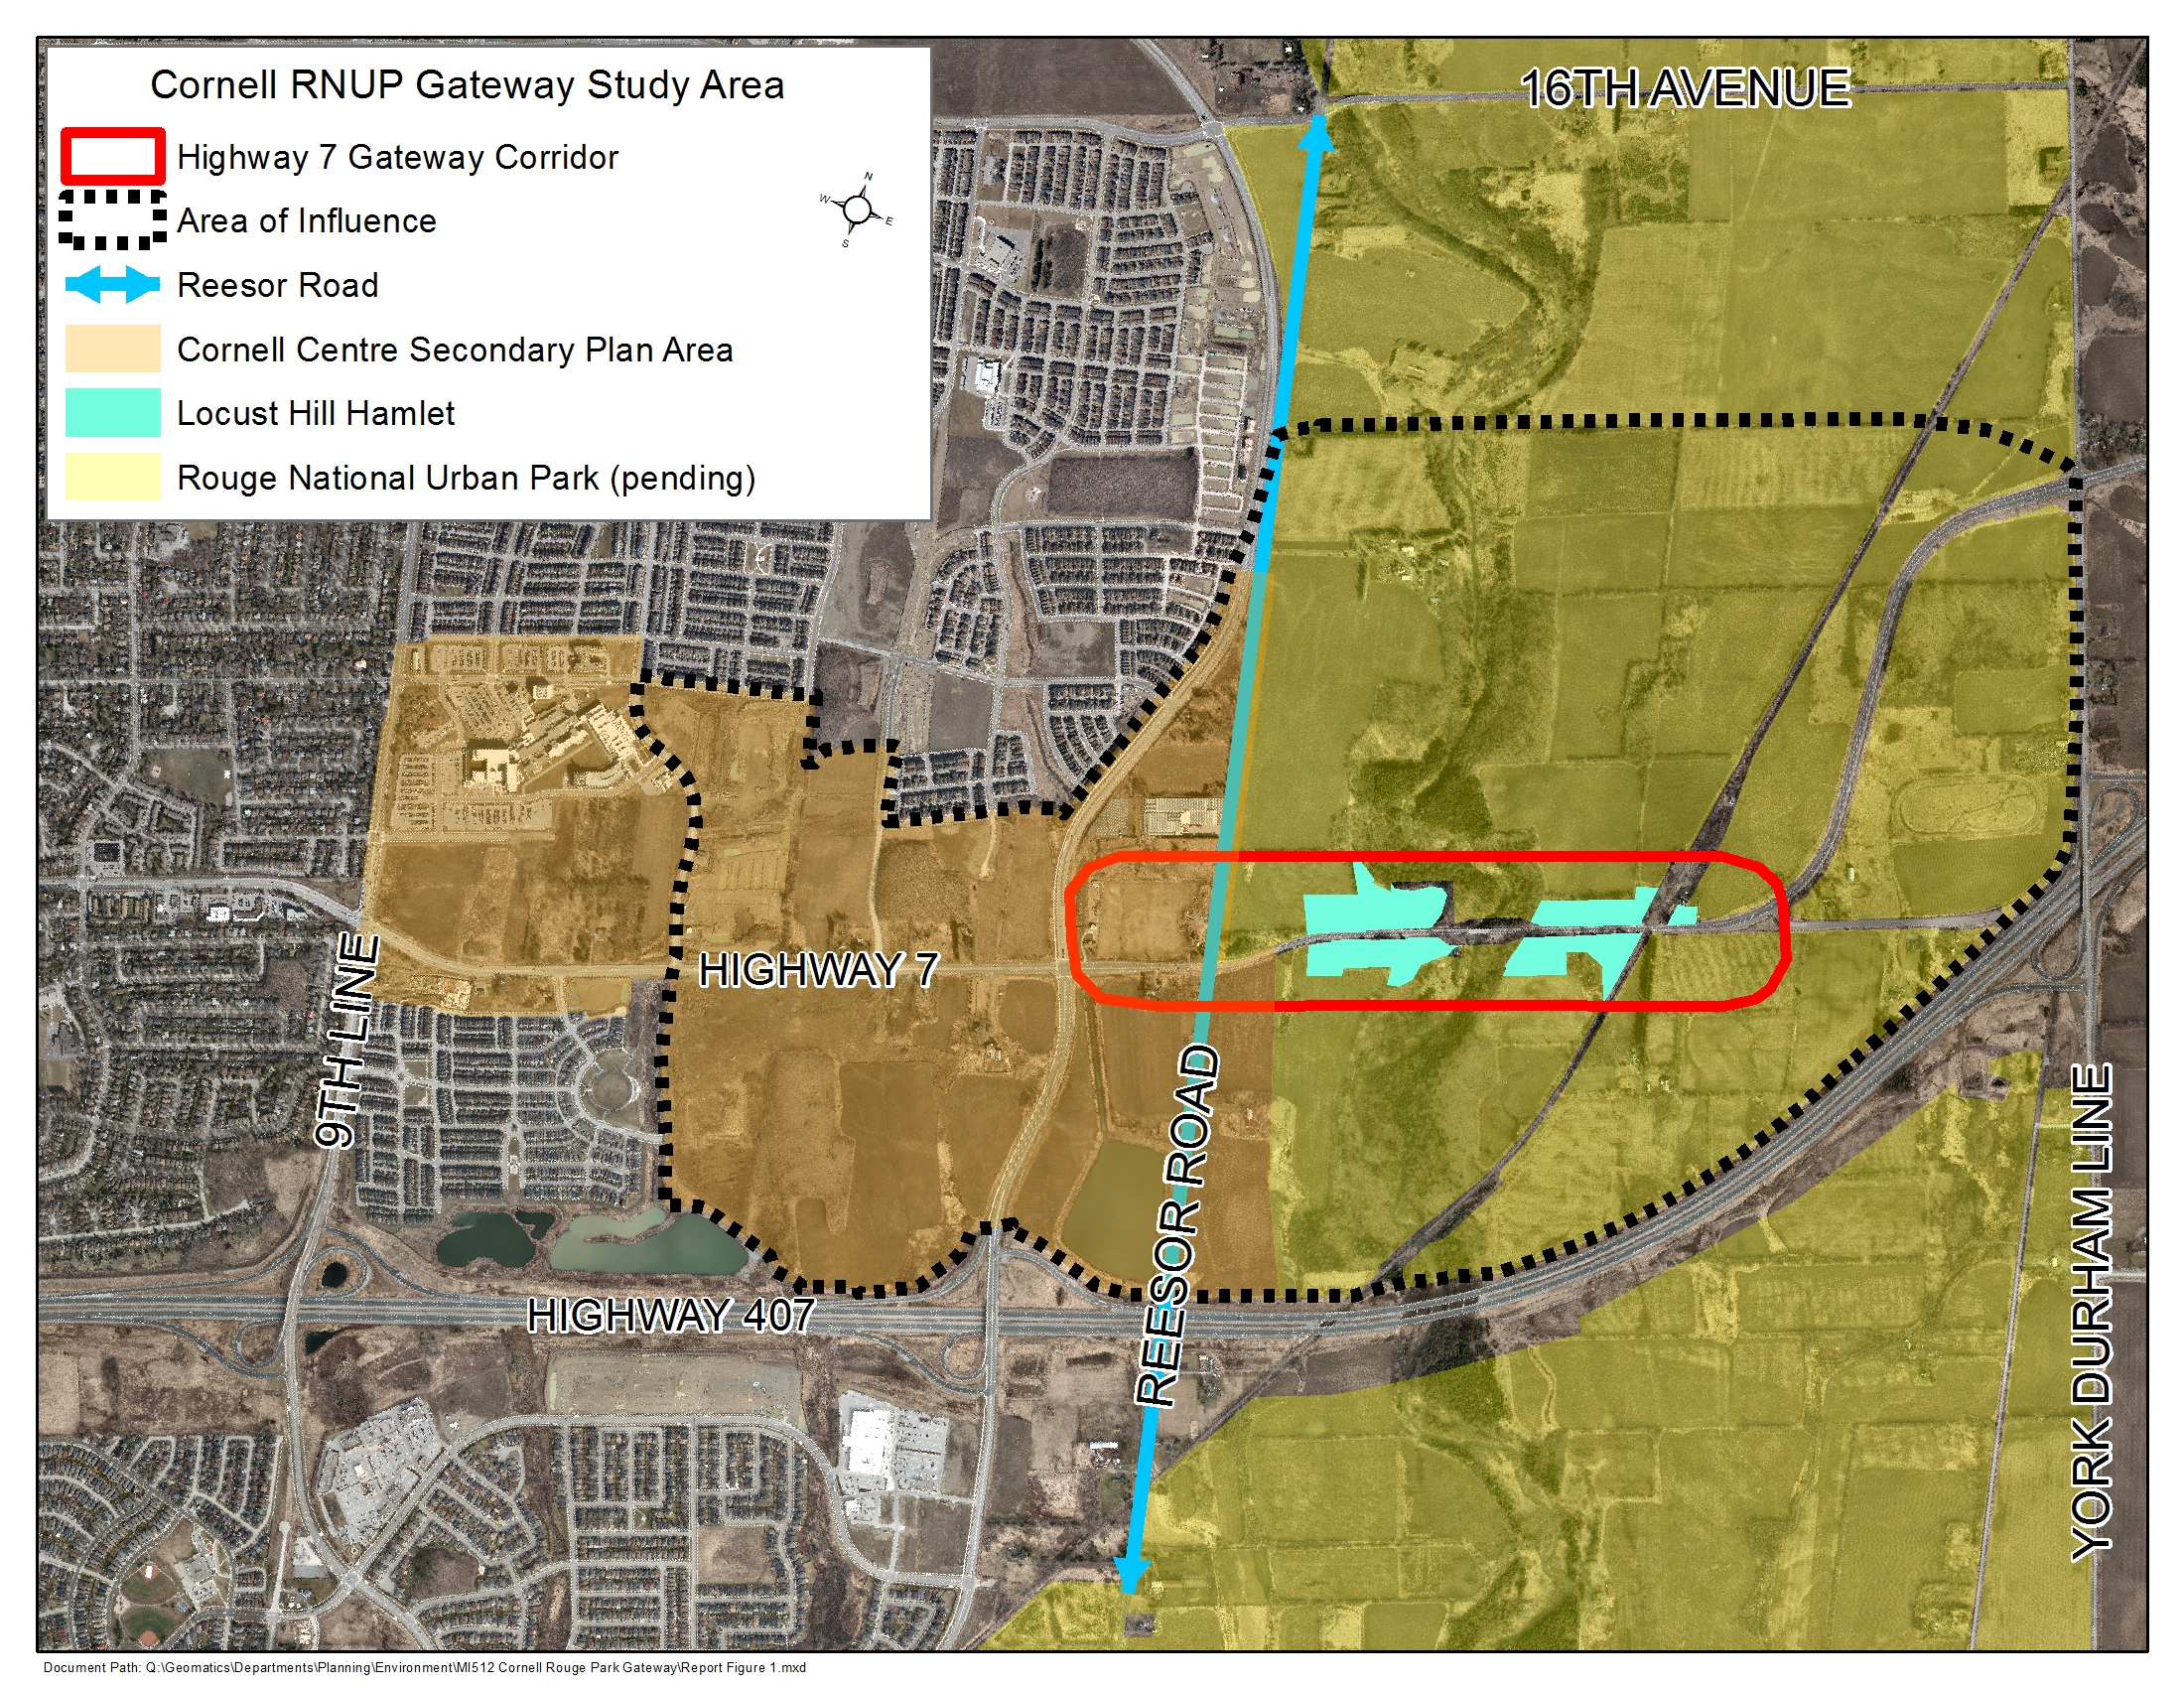 Study Area Map of Cornell Rouge National Urban Park Gateway